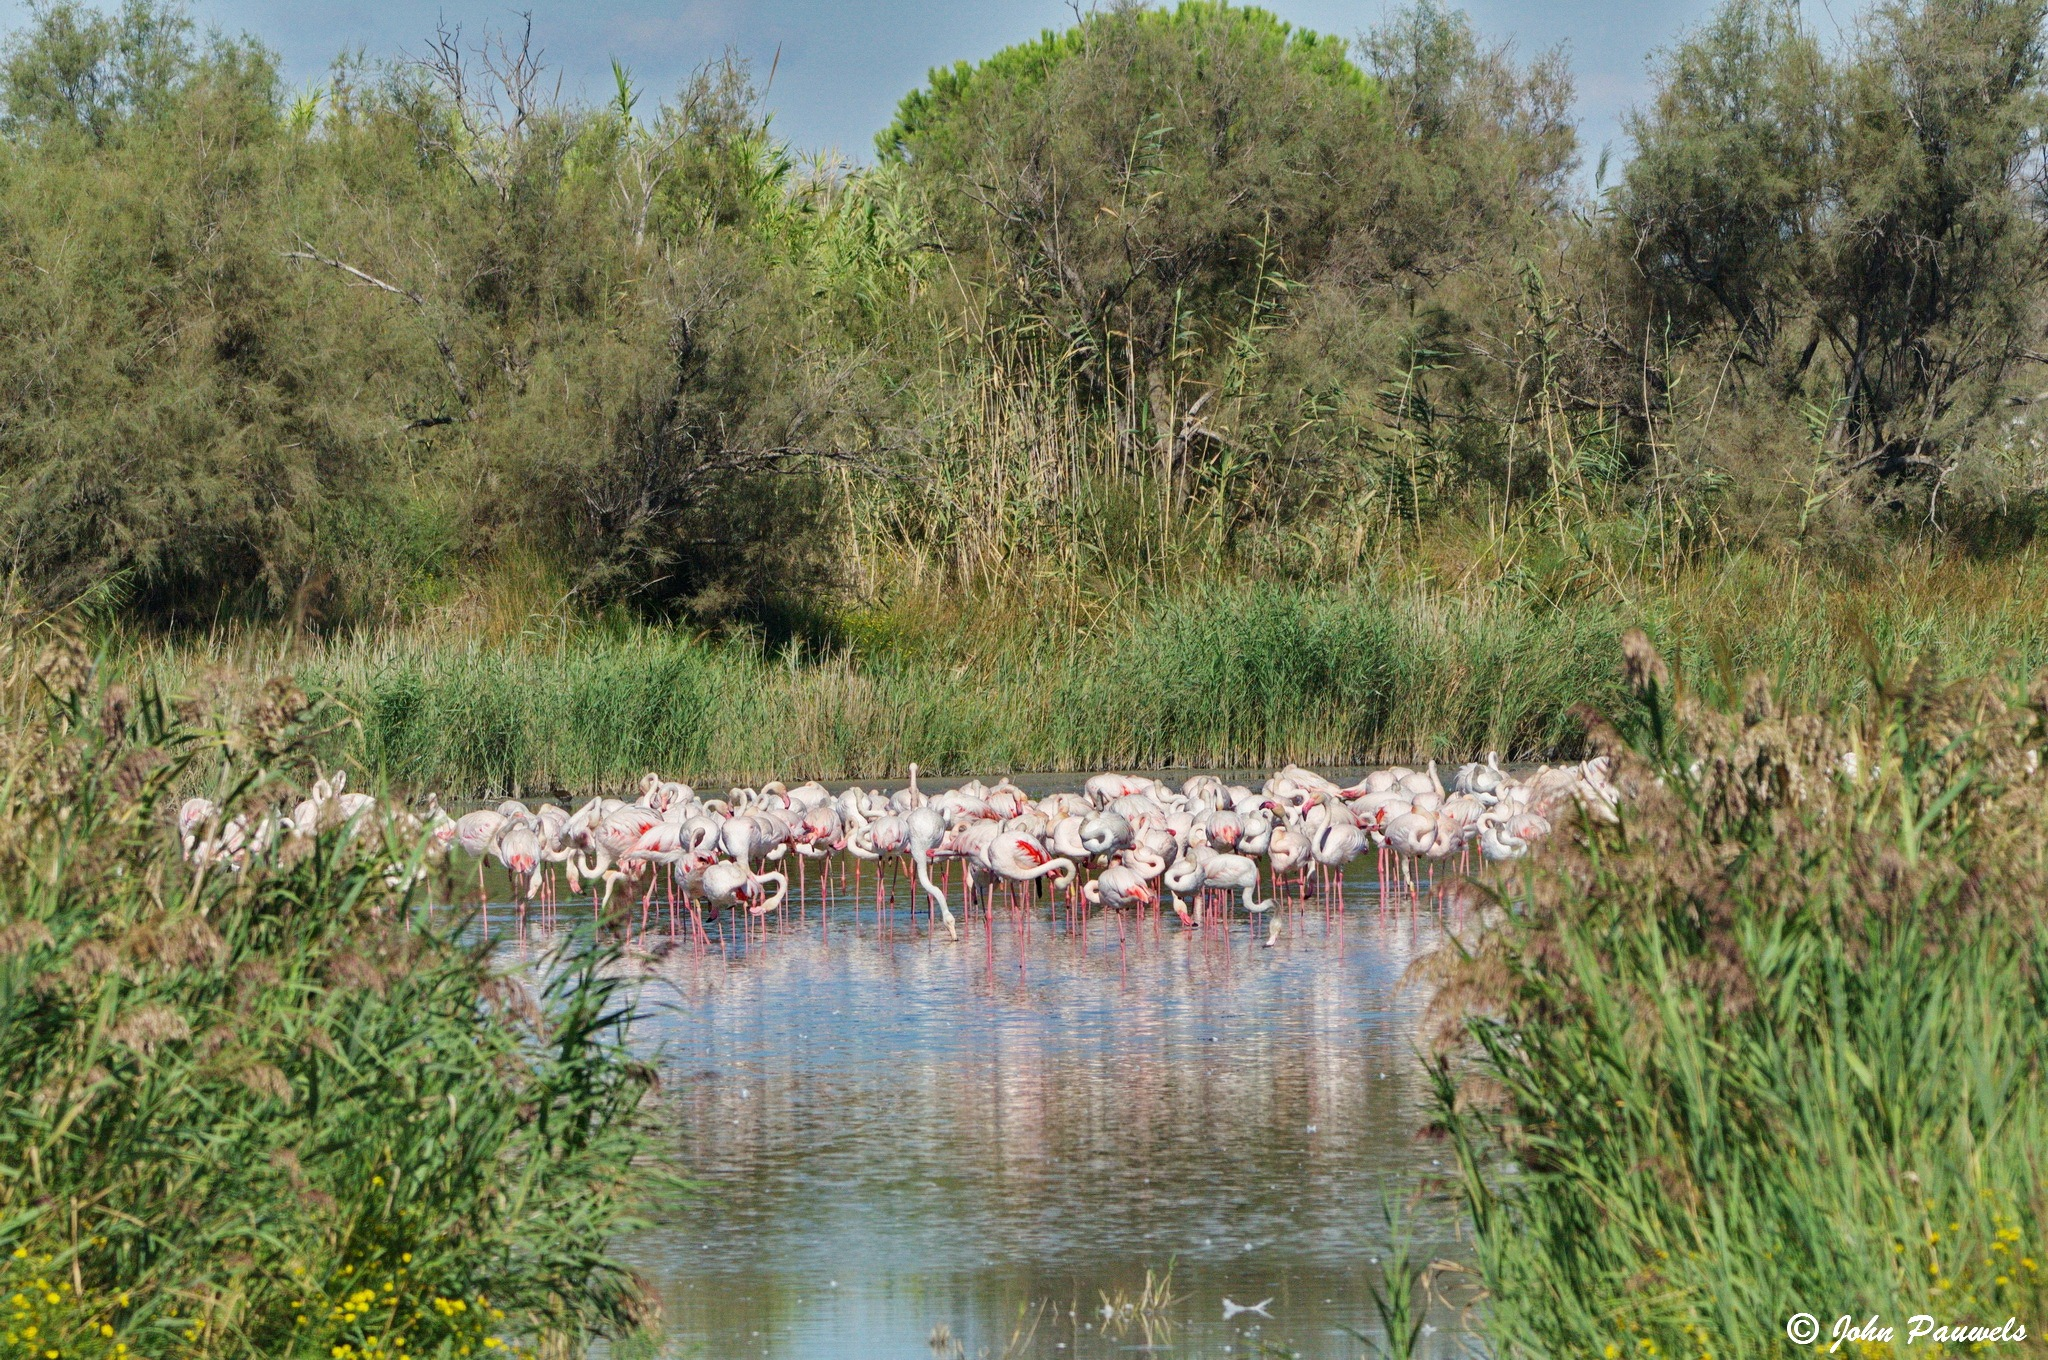 Pink flamigos in the Camargue. by John Pauwels